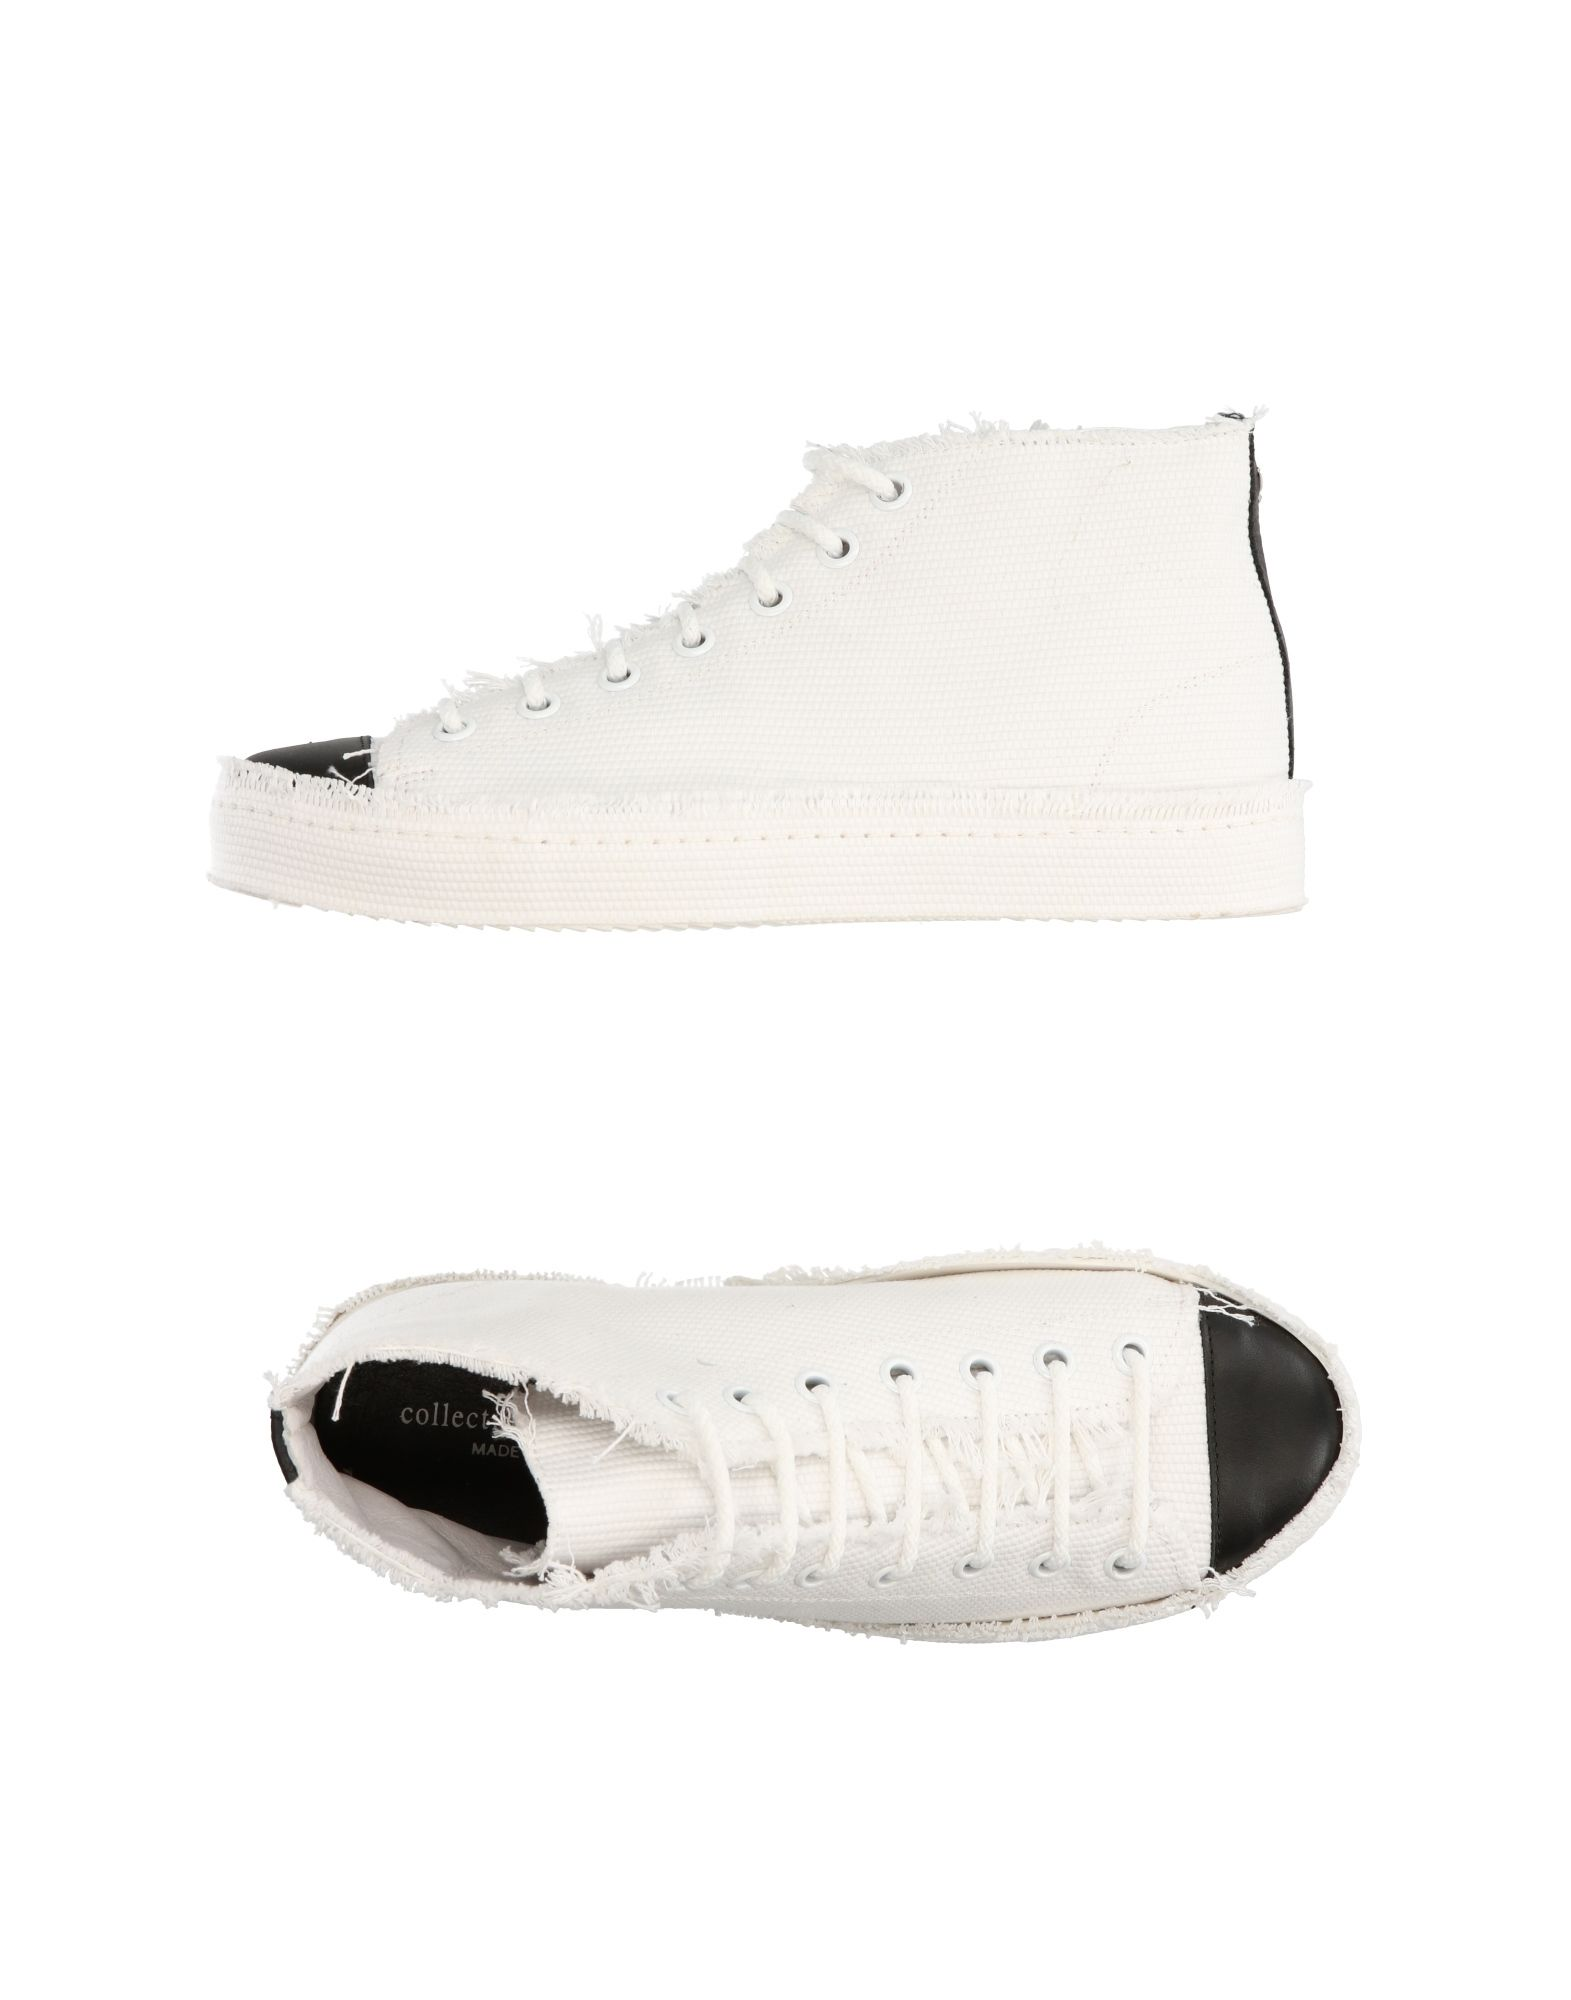 Sneakers Collection Privēe? Homme - Sneakers Collection Privēe? sur